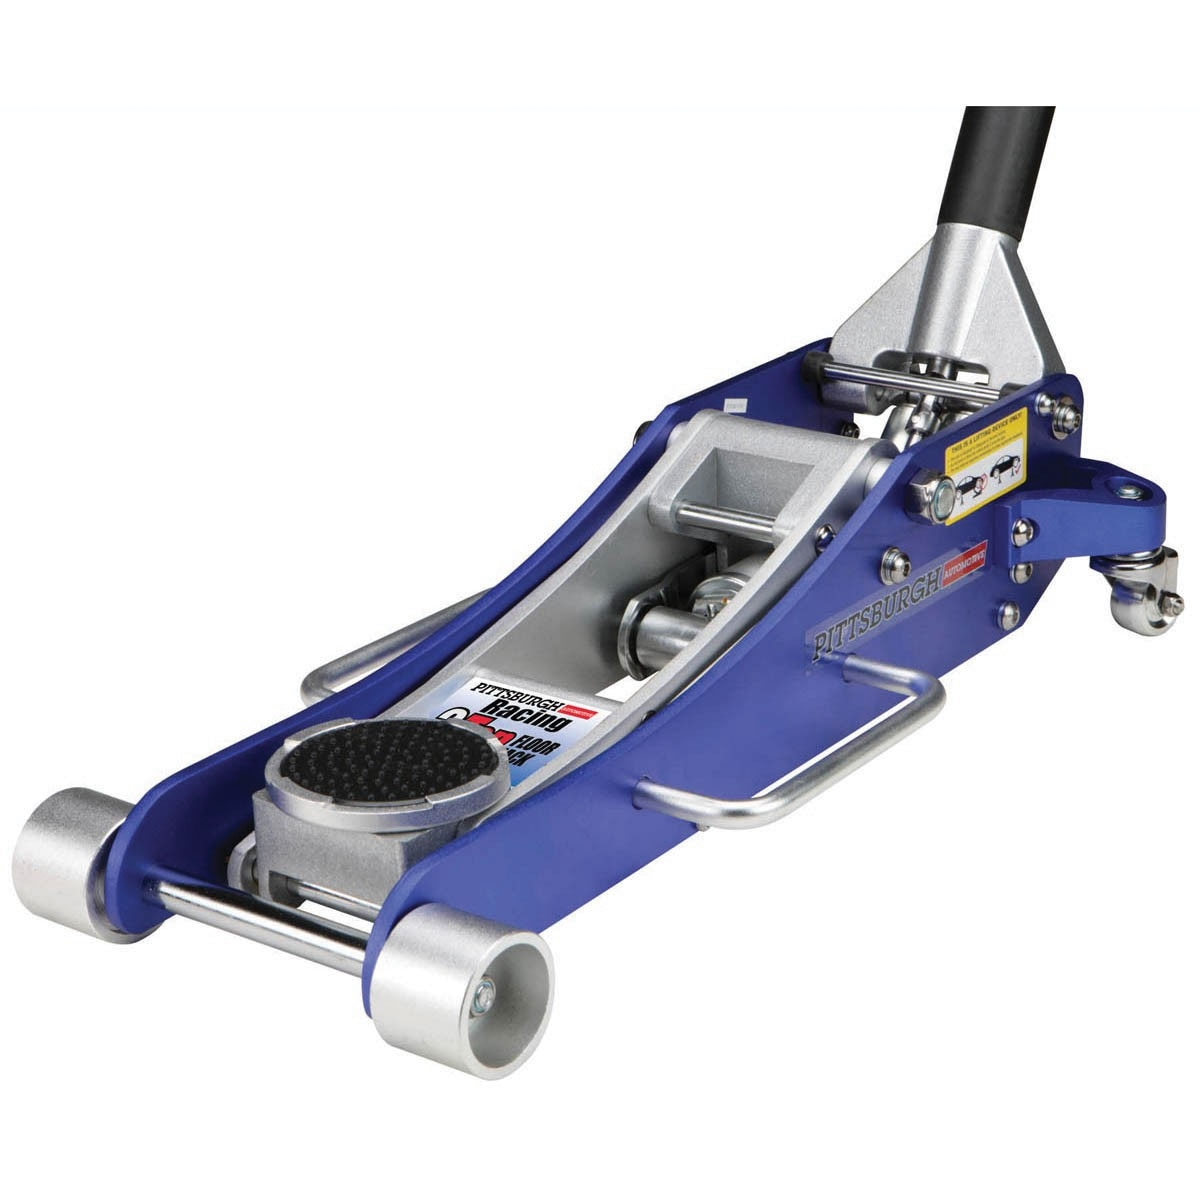 The Inside Track On Rapid Products Of Fitness: 2 Ton Aluminum Racing Floor Jack With Rapid Pump®